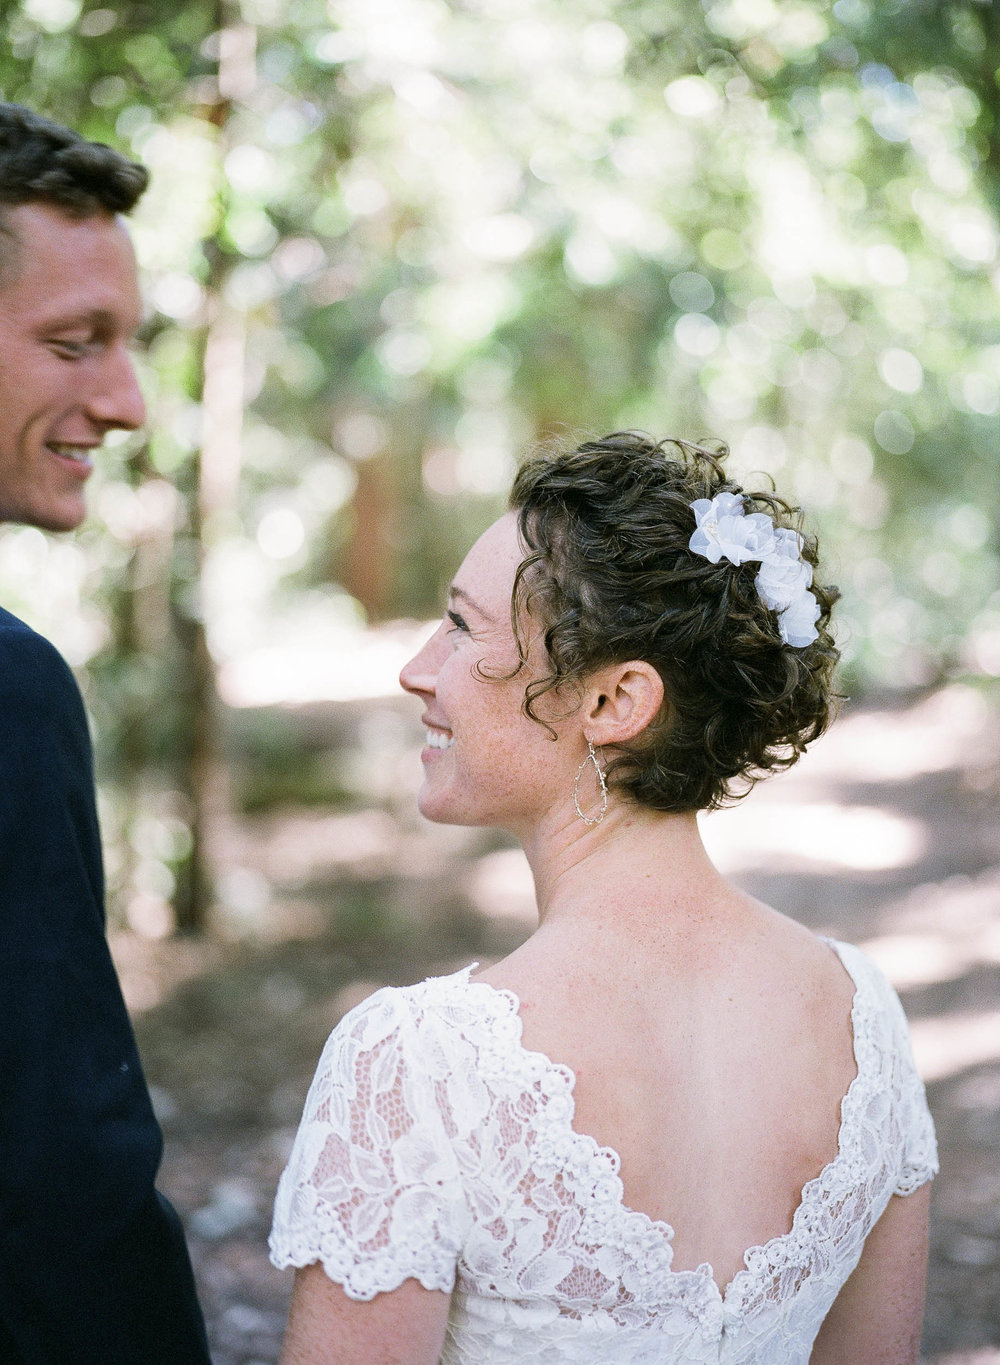 00009340_Redwoods Wedding_Film_Buena Lane Photography_008.jpg